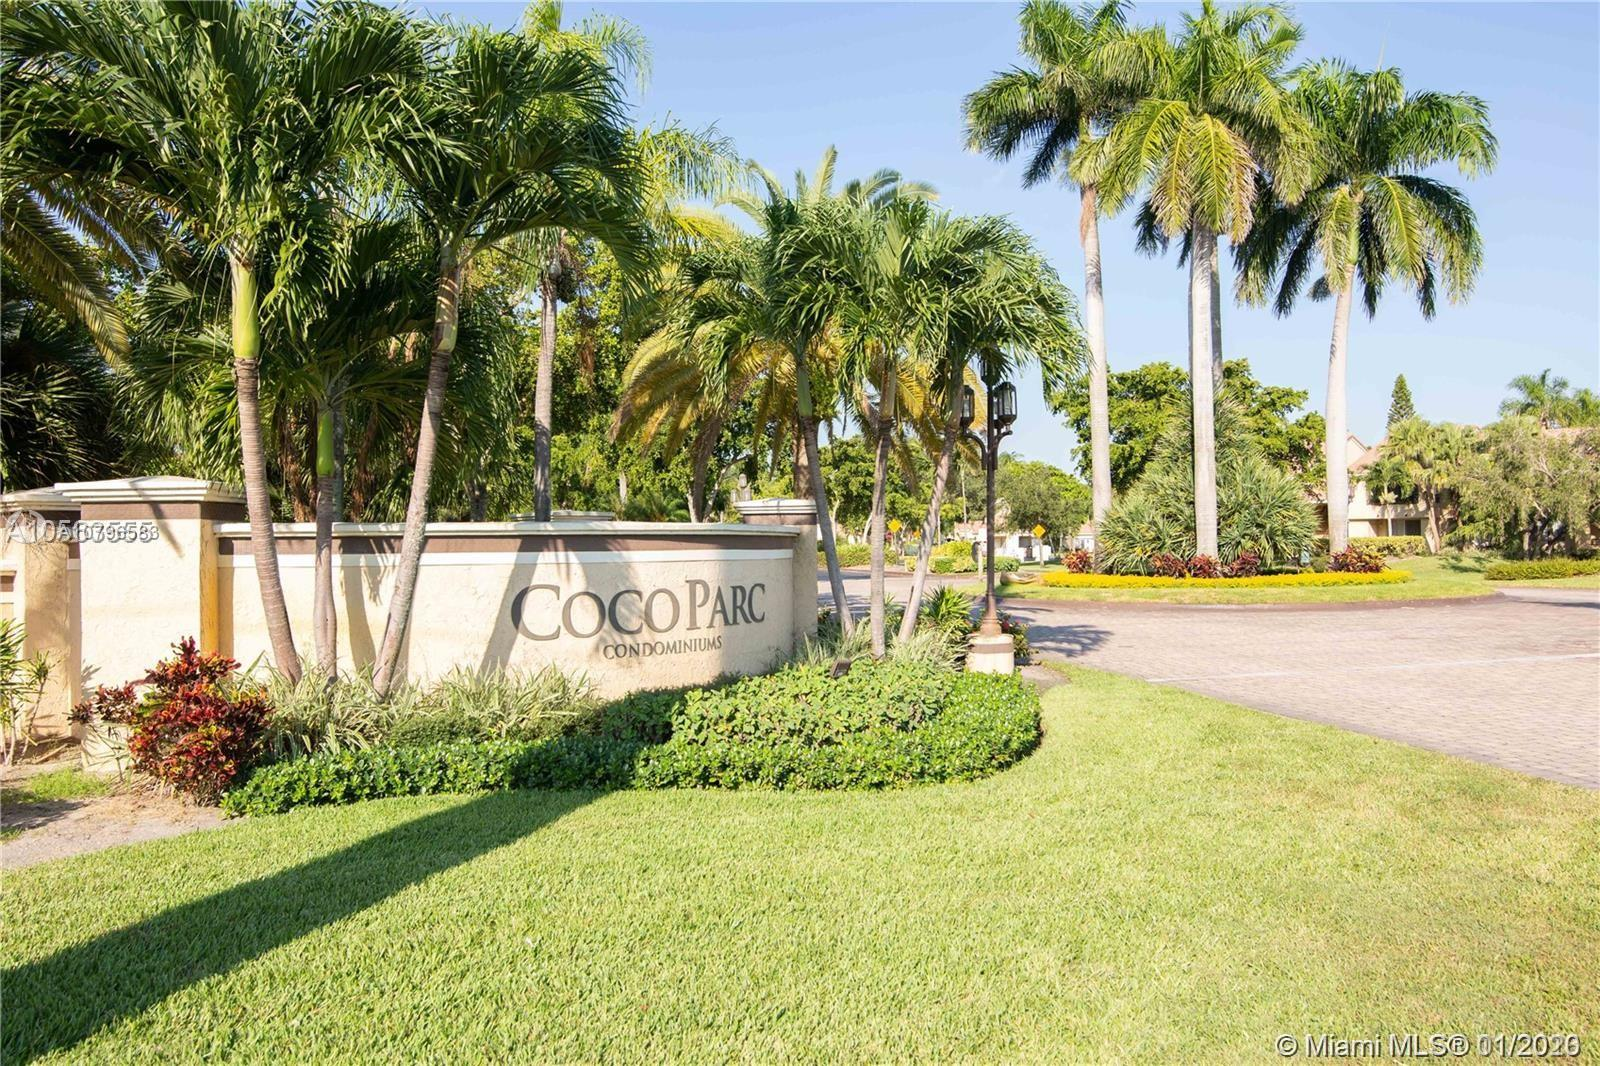 Coconut Creek Homes For Sale Palm Beach Broward Homes